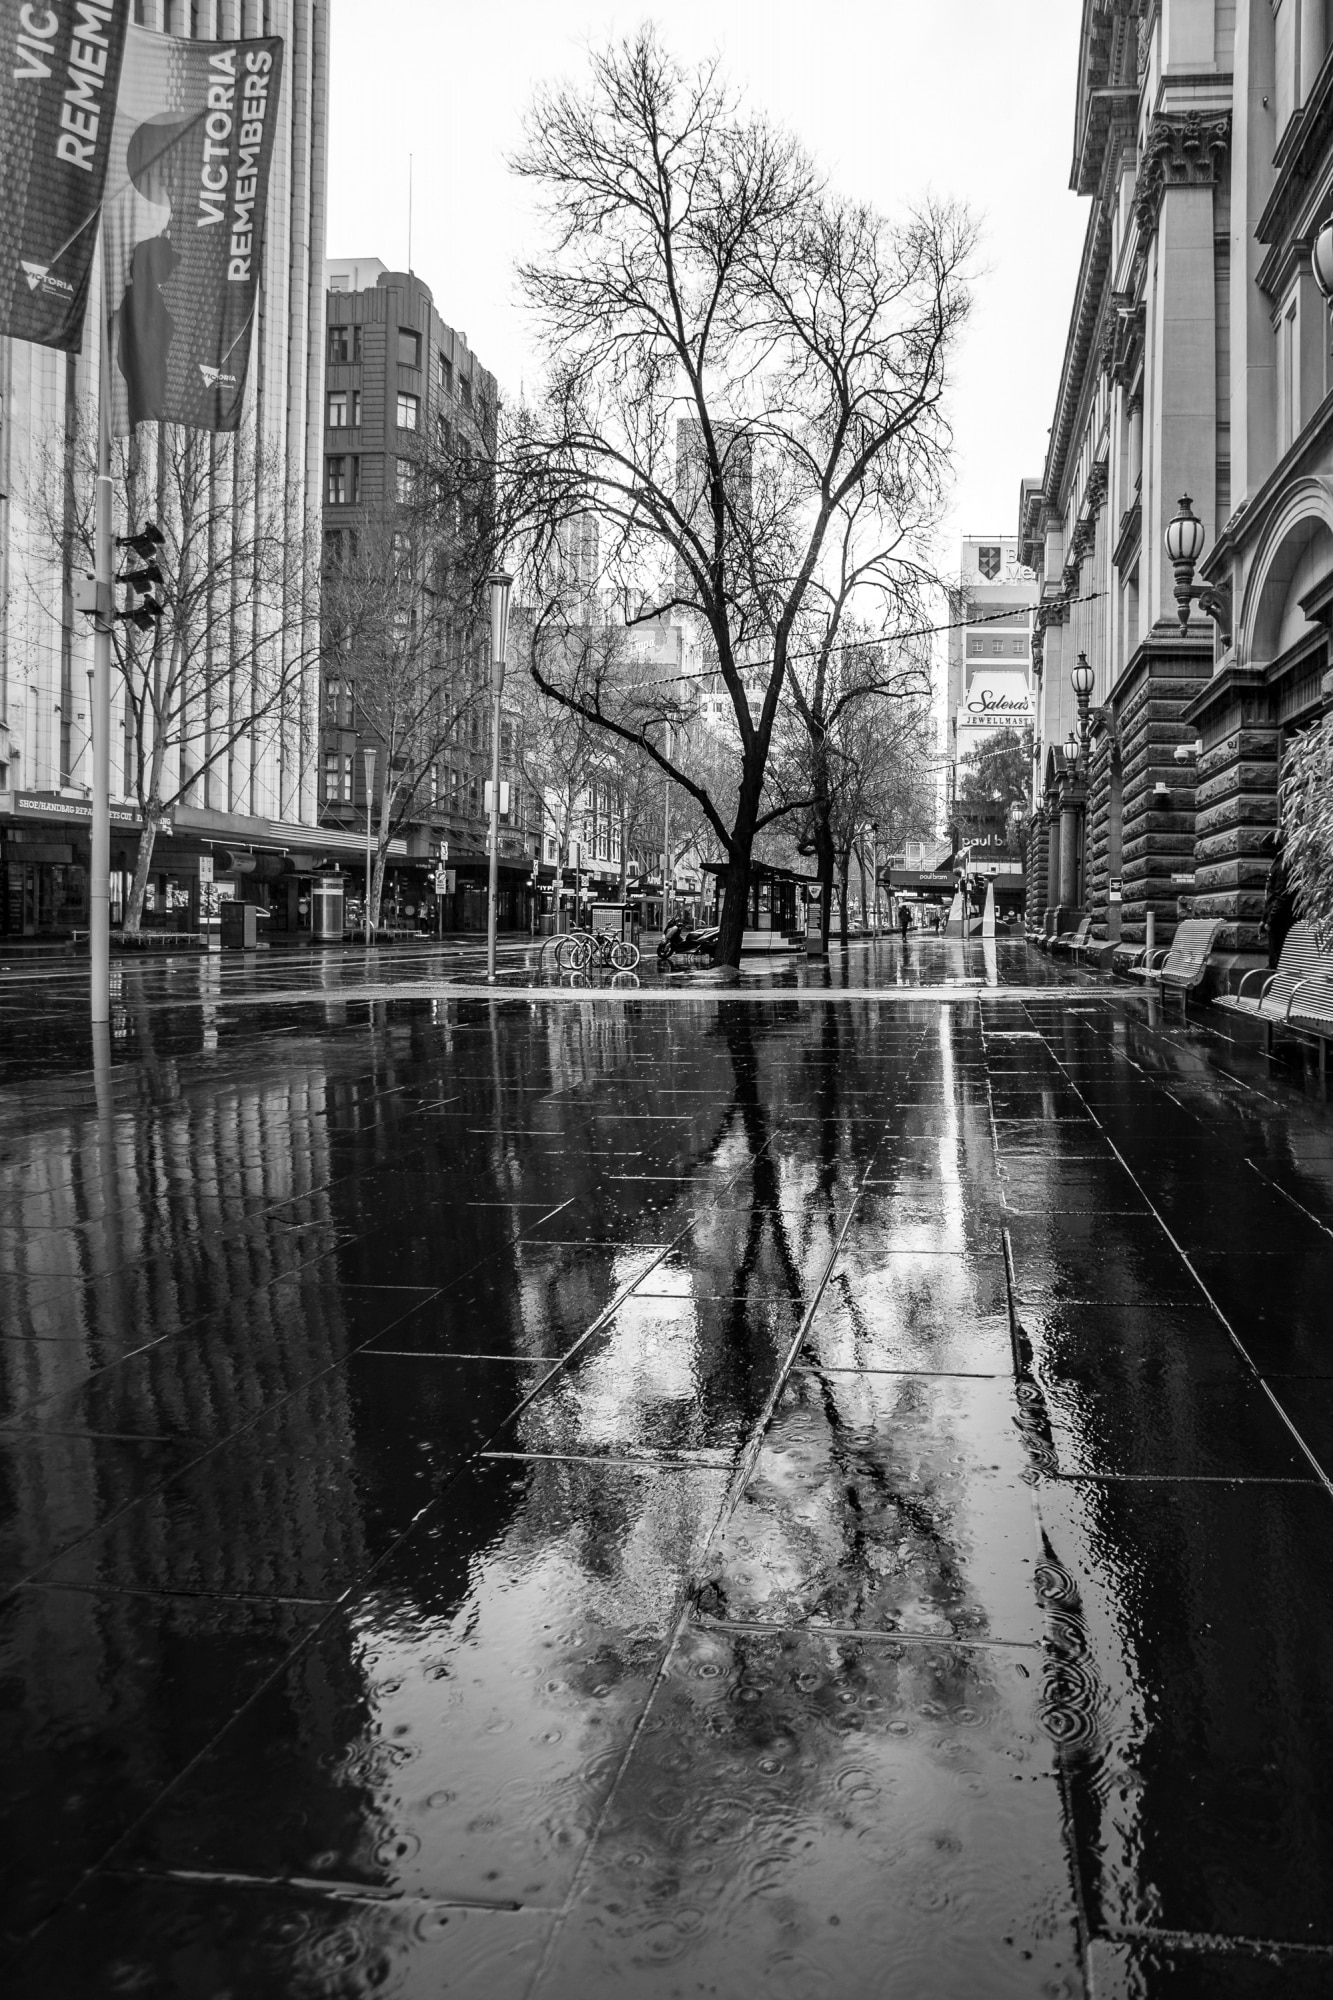 A view of a water sogged Swanston Street devoid of life during COVID-19 in Melbourne, Australia. Victoria has recorded 14 COVID related deaths including a 20 year old, marking the youngest to die from Coronavirus in Australia, and an additional 372 new cases overnight.